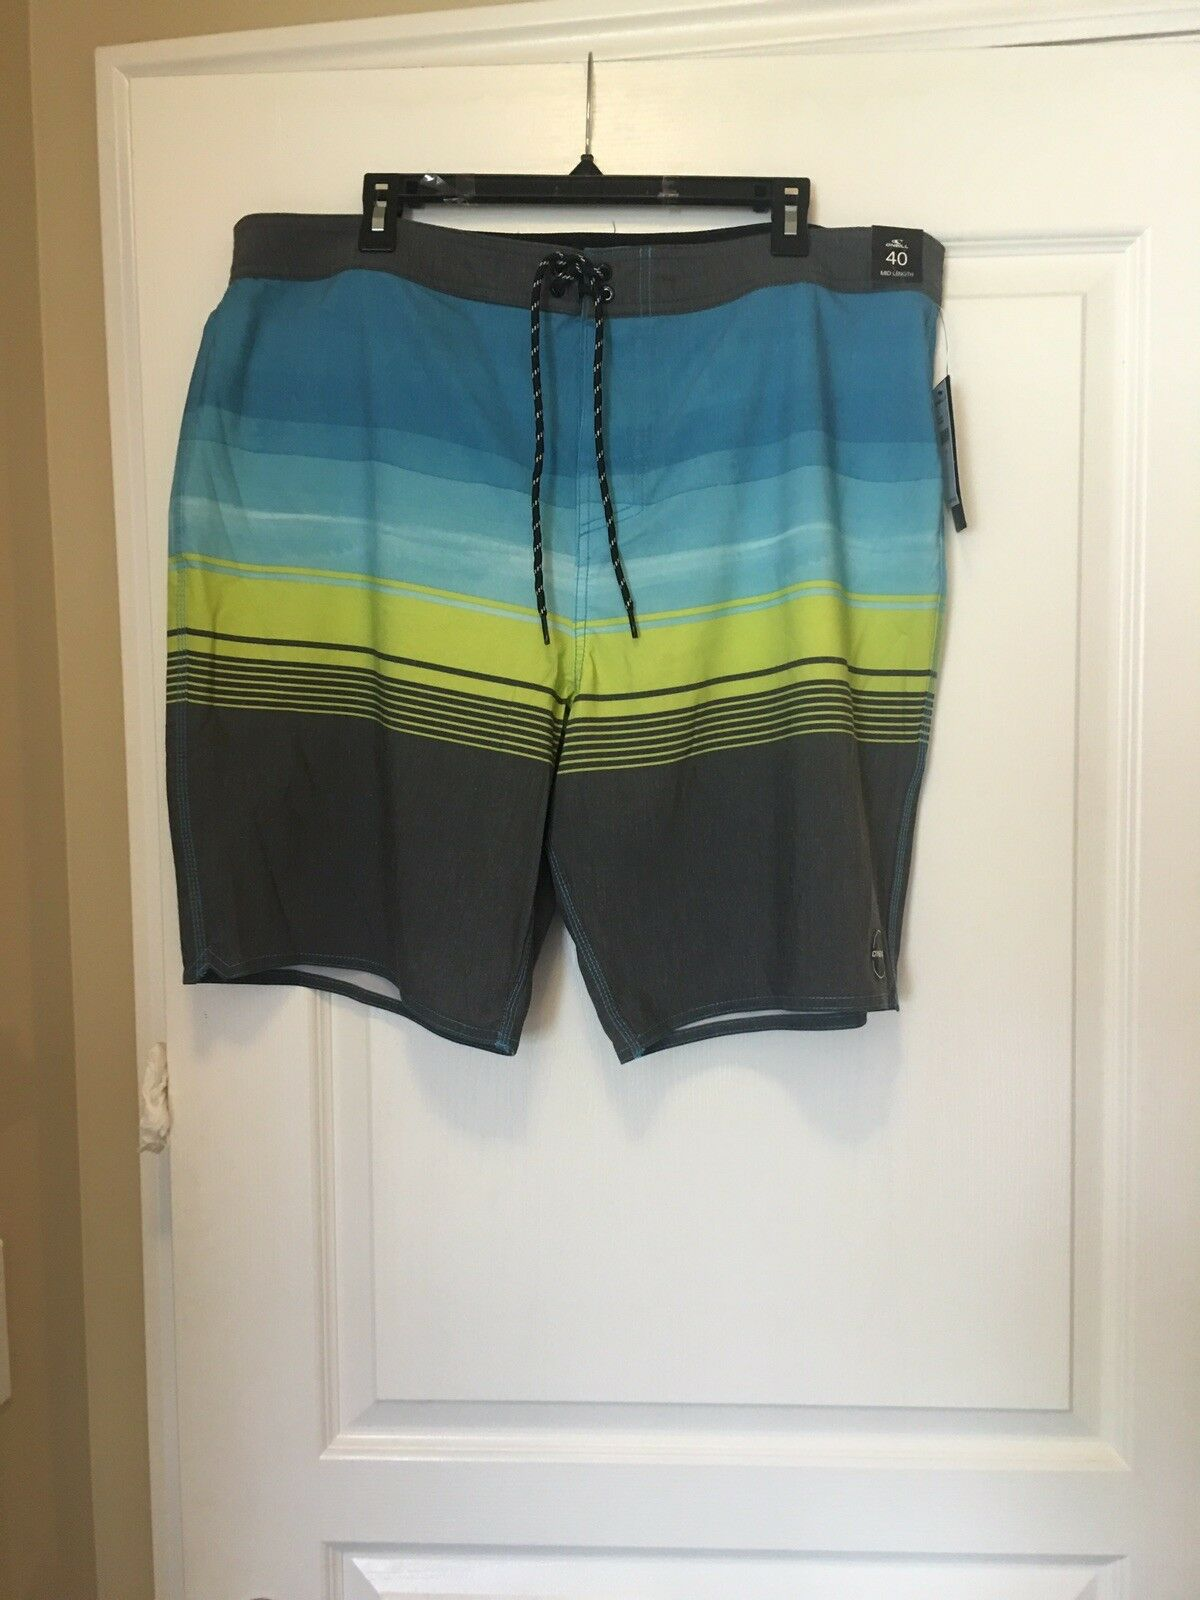 NWT Men's O'Neill Informant Swim Trunks Shorts Swimsuit   Sz 40